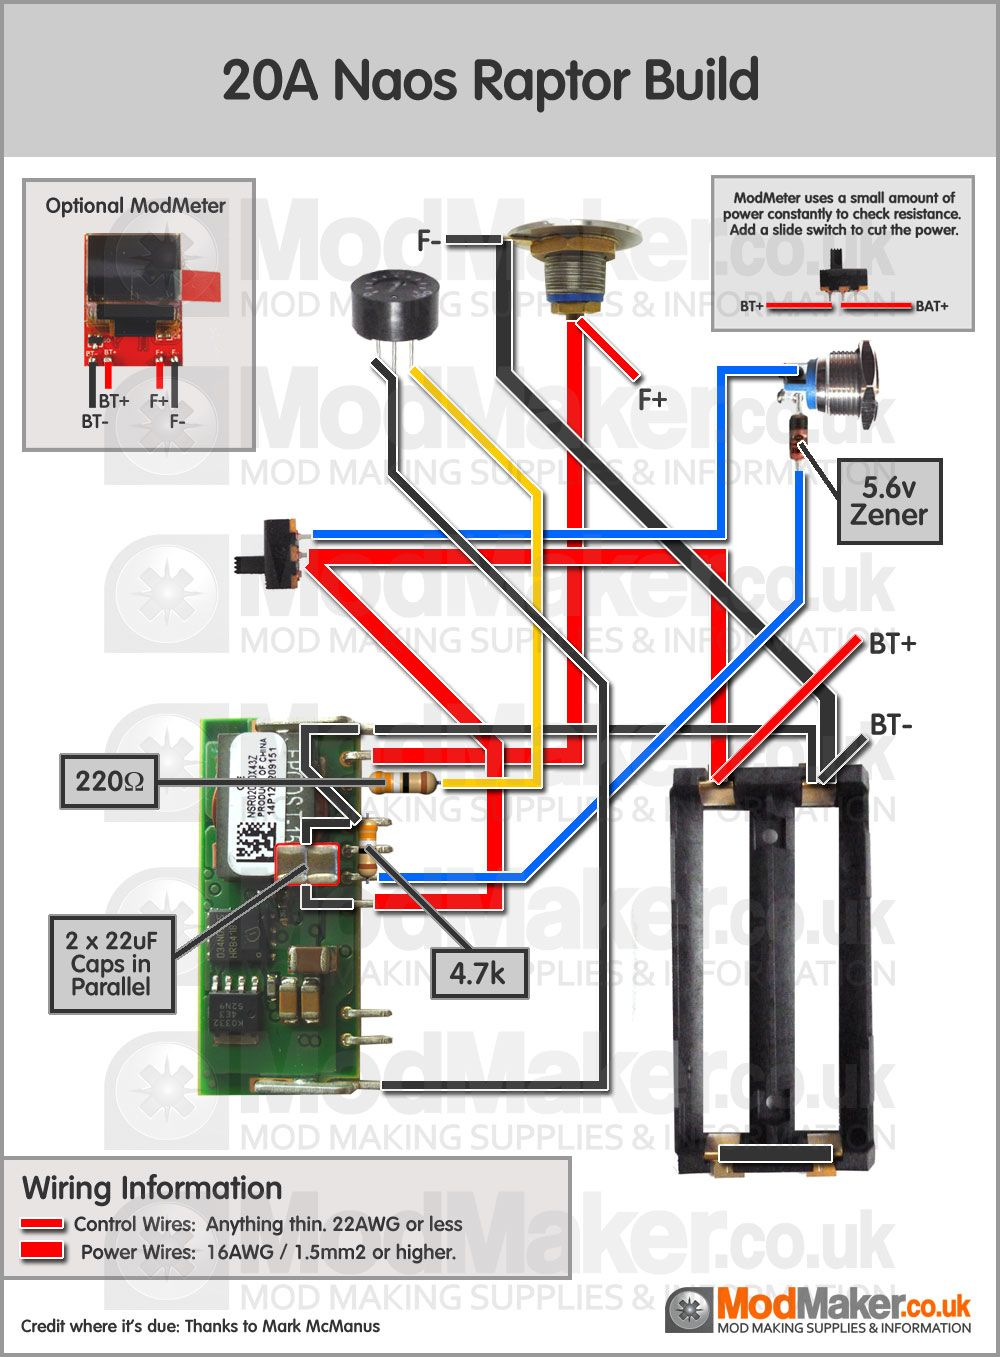 2005 660 Raptor Wiring Diagram Wire For Car Stereo All Data 20a Naos Vaporized Vape Mods Diy Yamaha Warrior 350